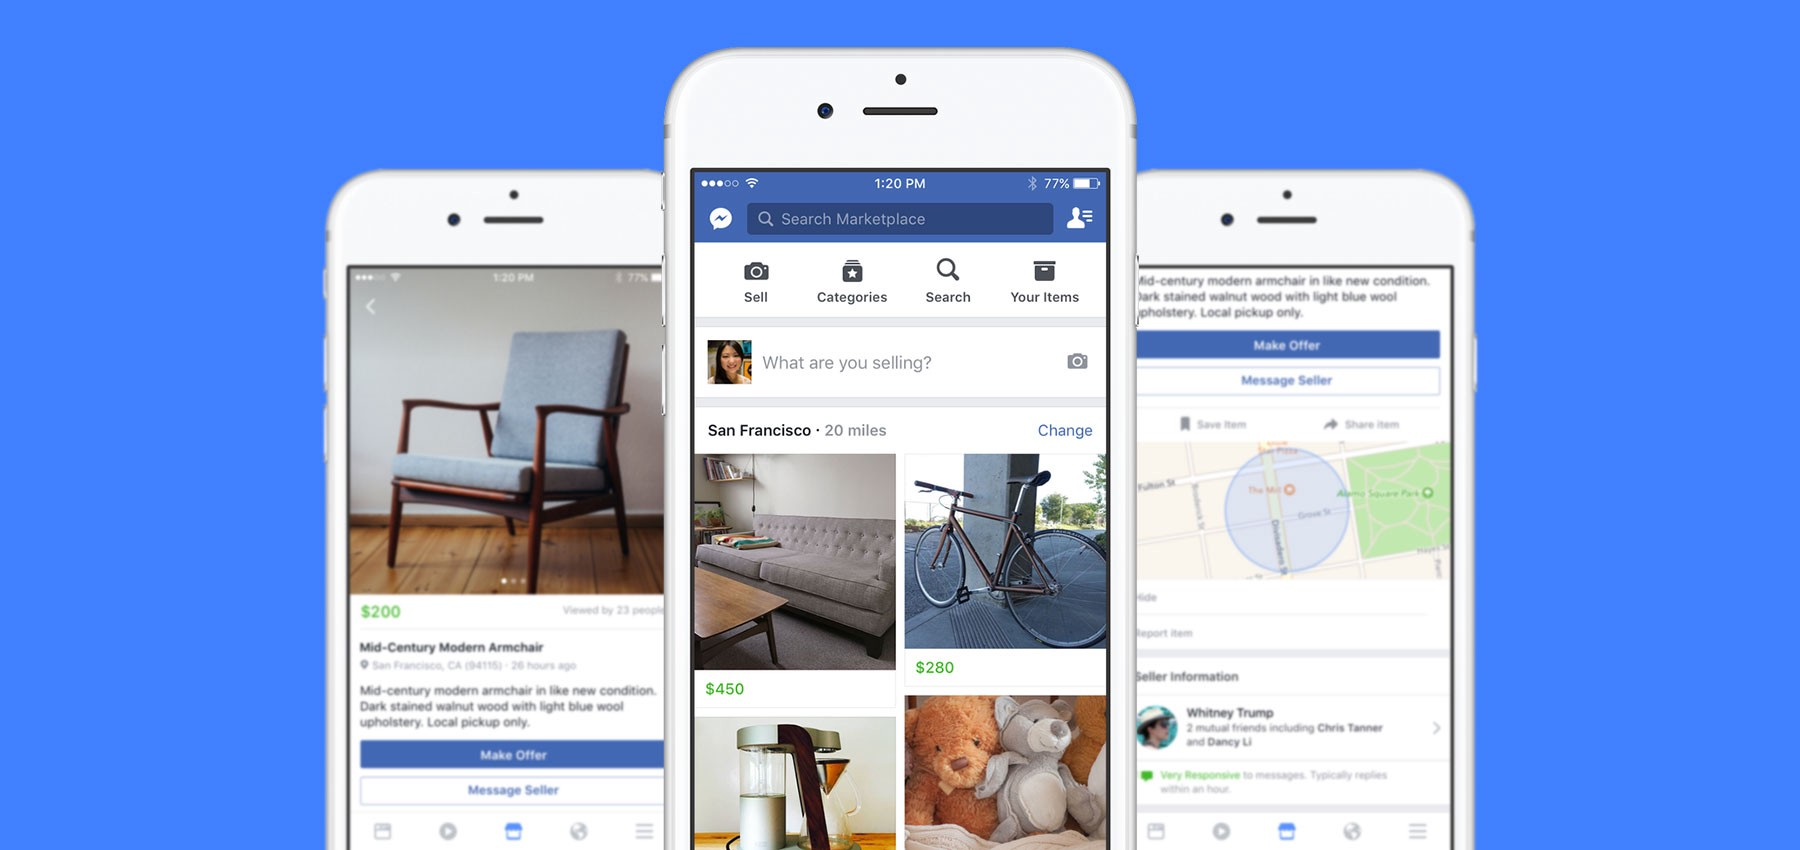 Facebook Marketplace: A real rival to eBay? - Isobar Global